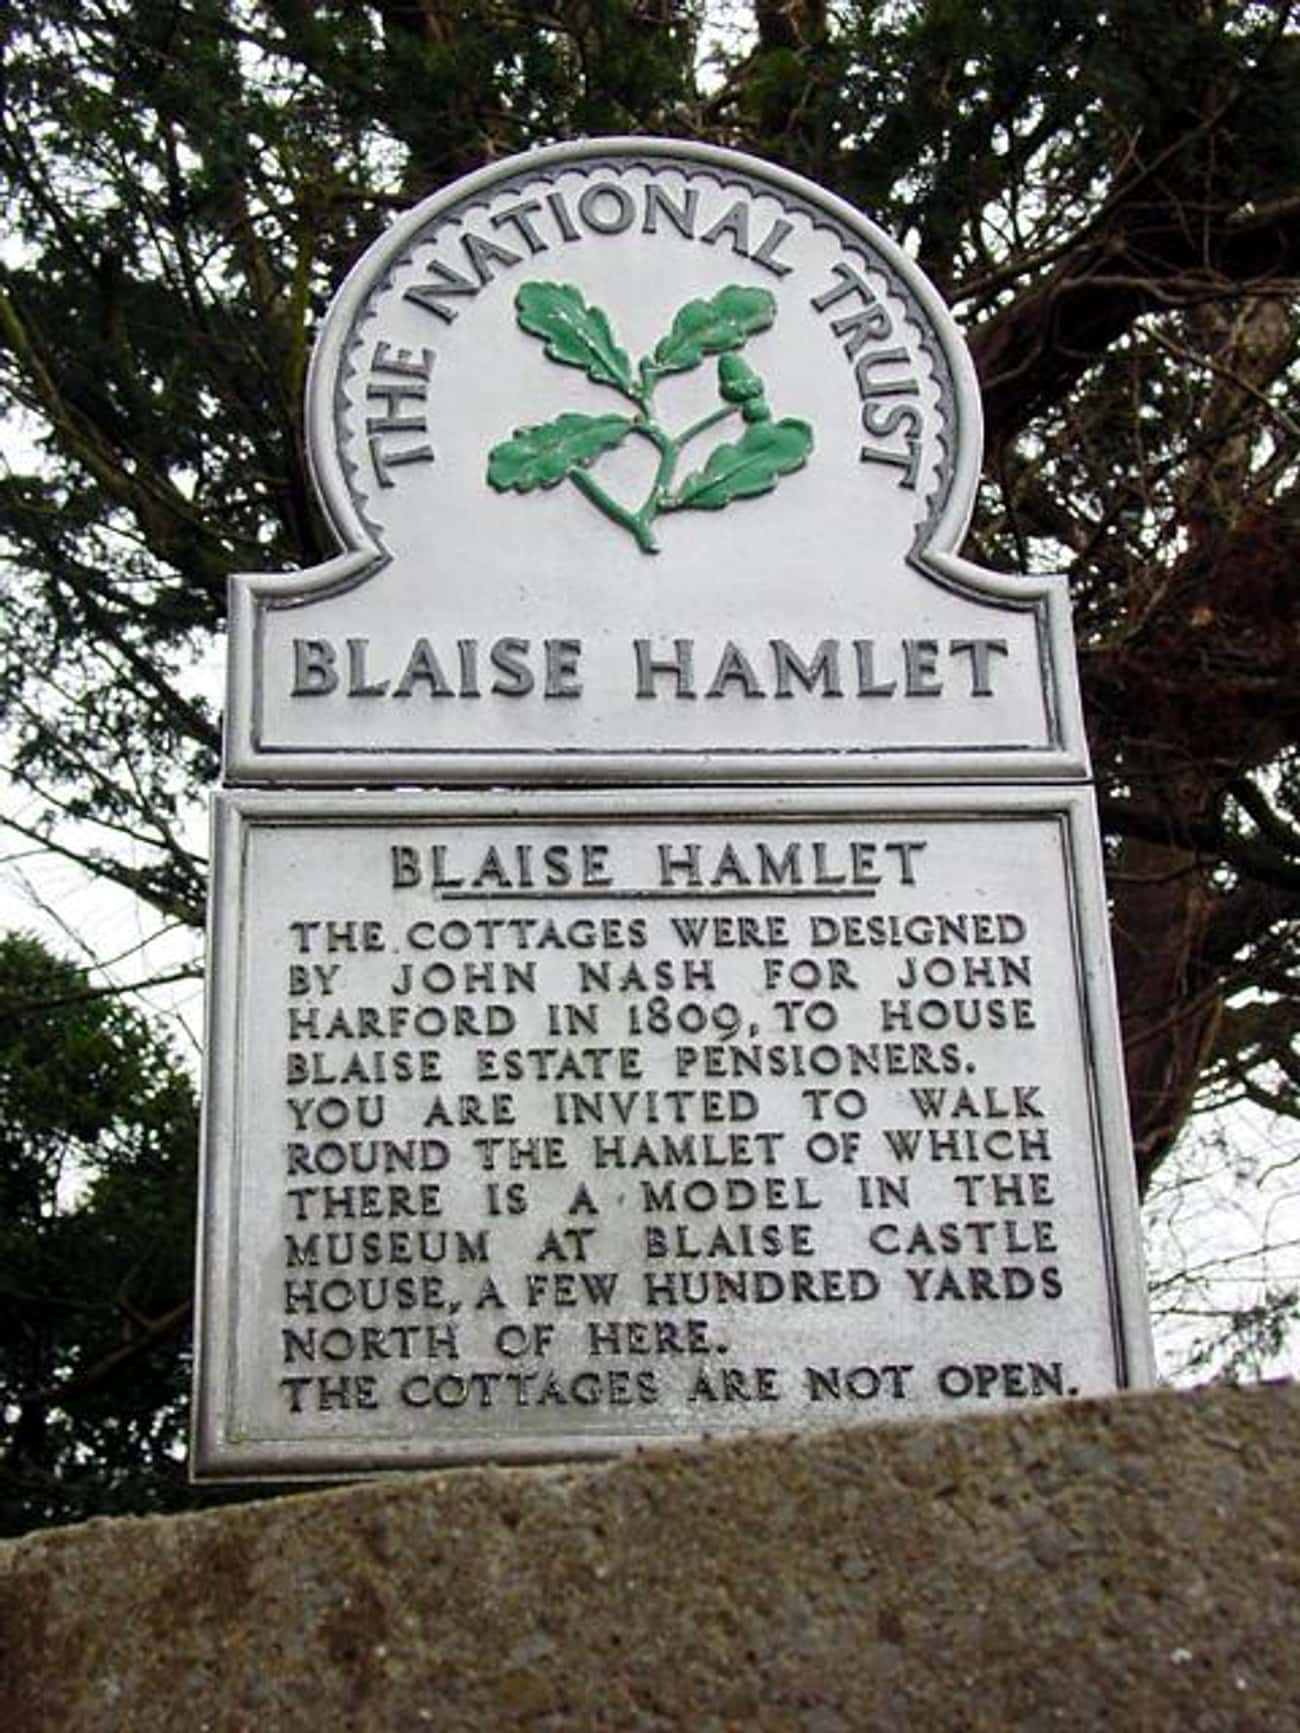 Blaise Hamlet is listed (or ranked) 4 on the list John Nash Architecture